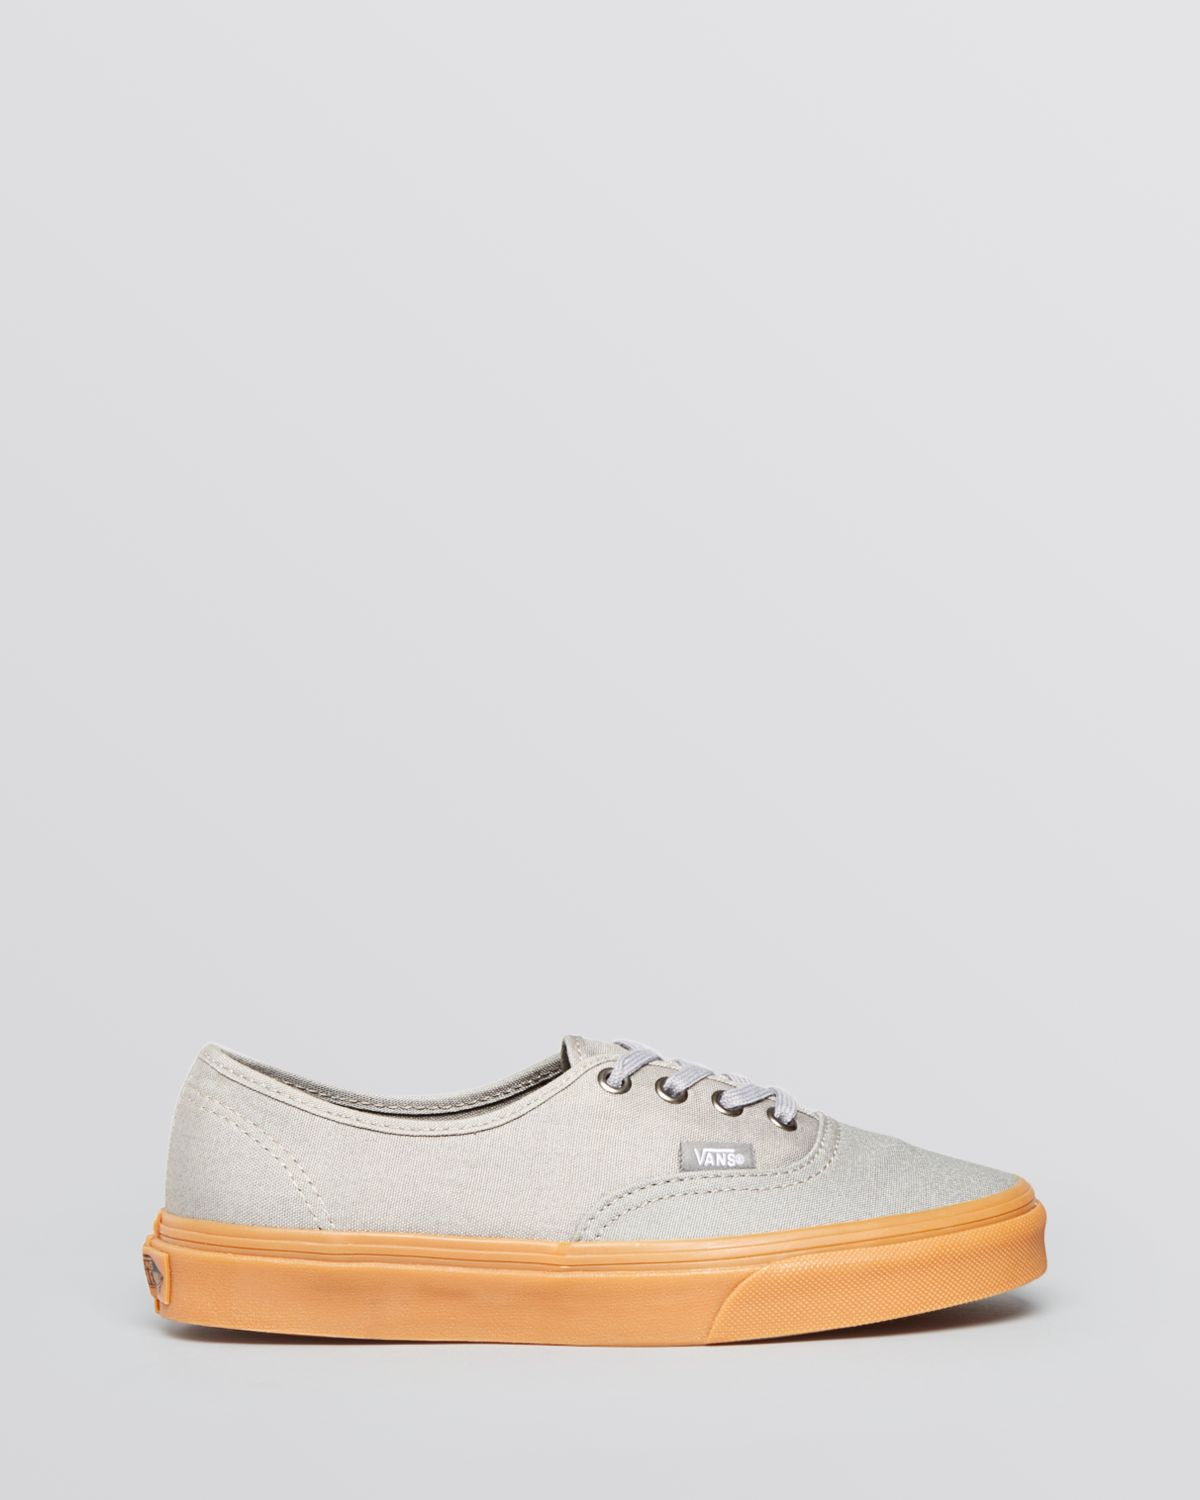 6b463e2ba63 Lyst - Vans Lace Up Sneakers - Authentic Gumsole in Gray